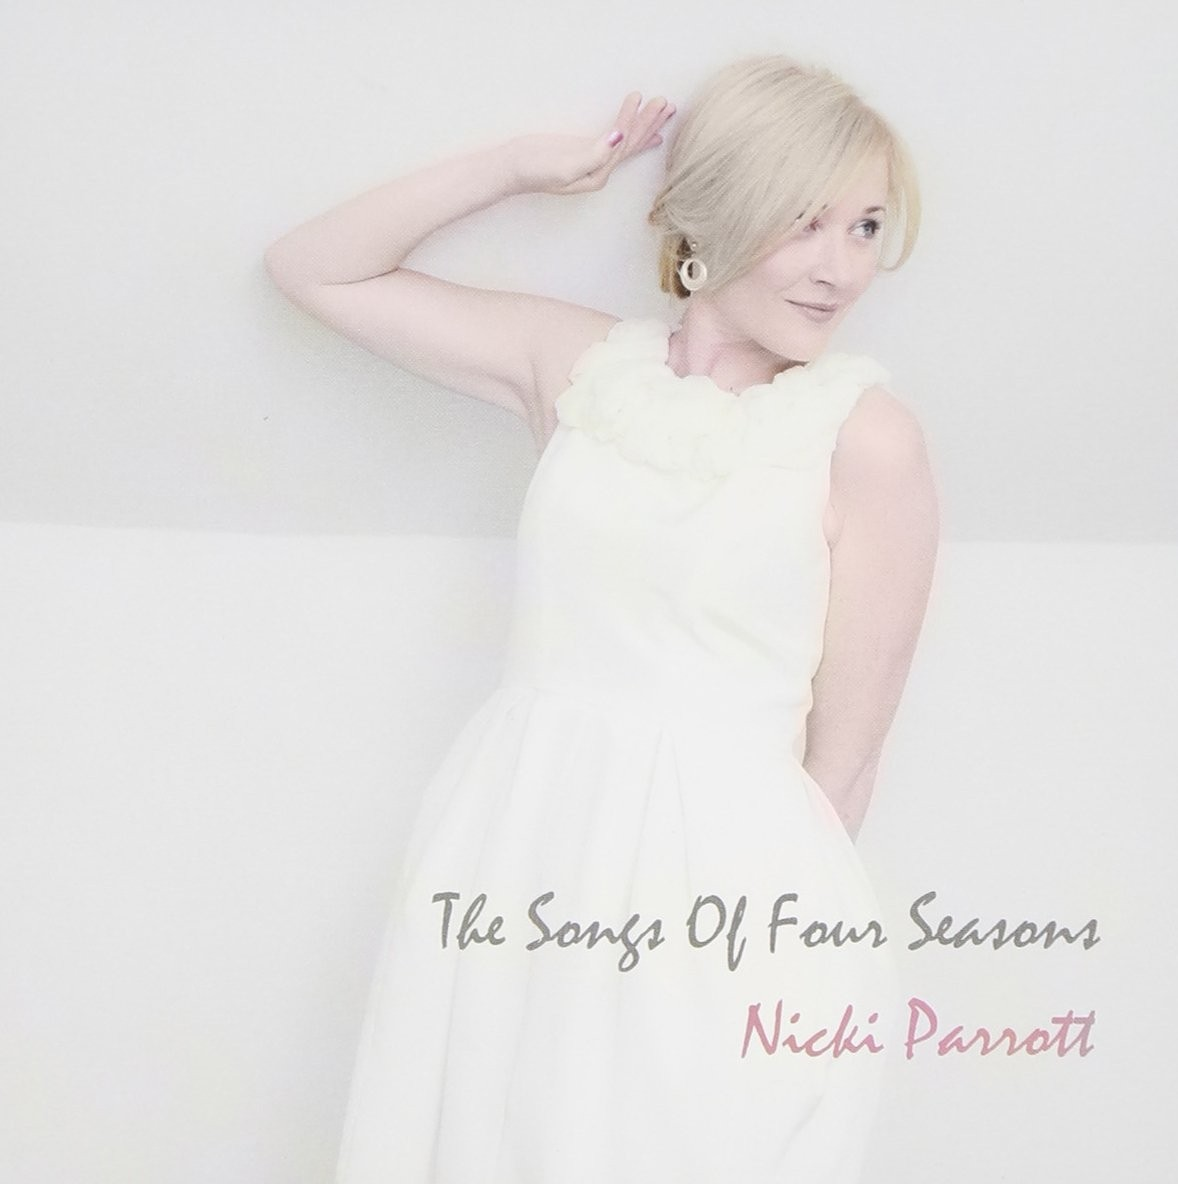 Nicki Parrott - The Songs of Four Seasons